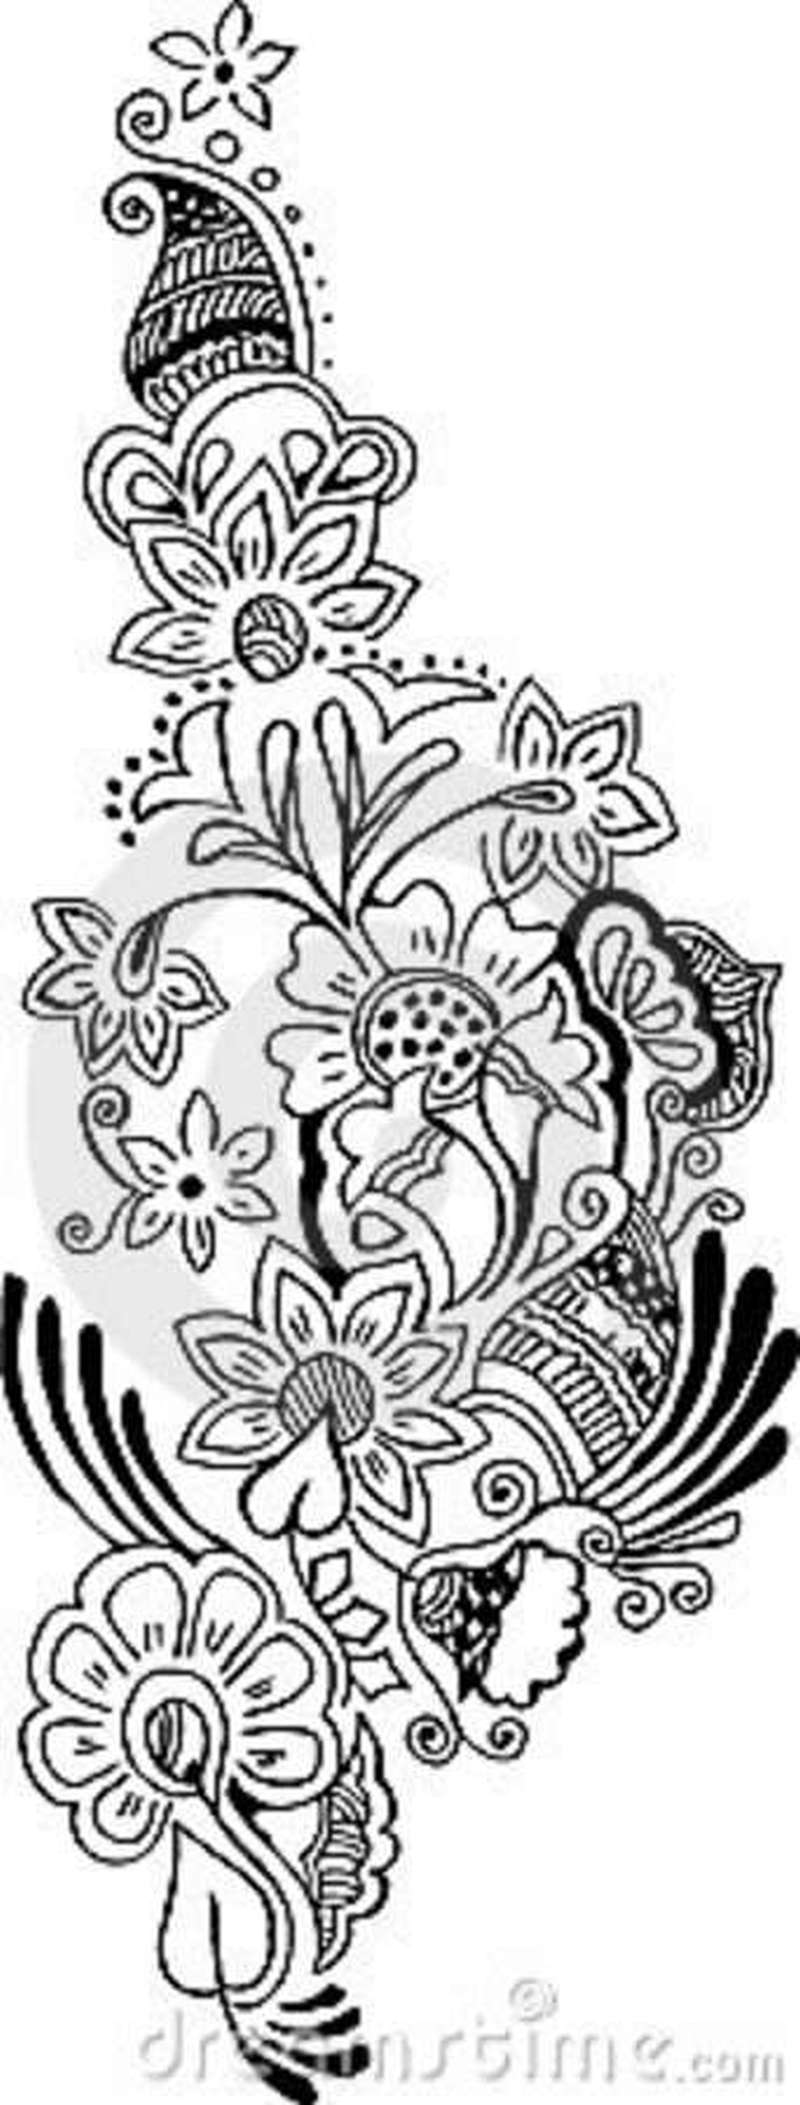 Vector floral pattern tattoo design